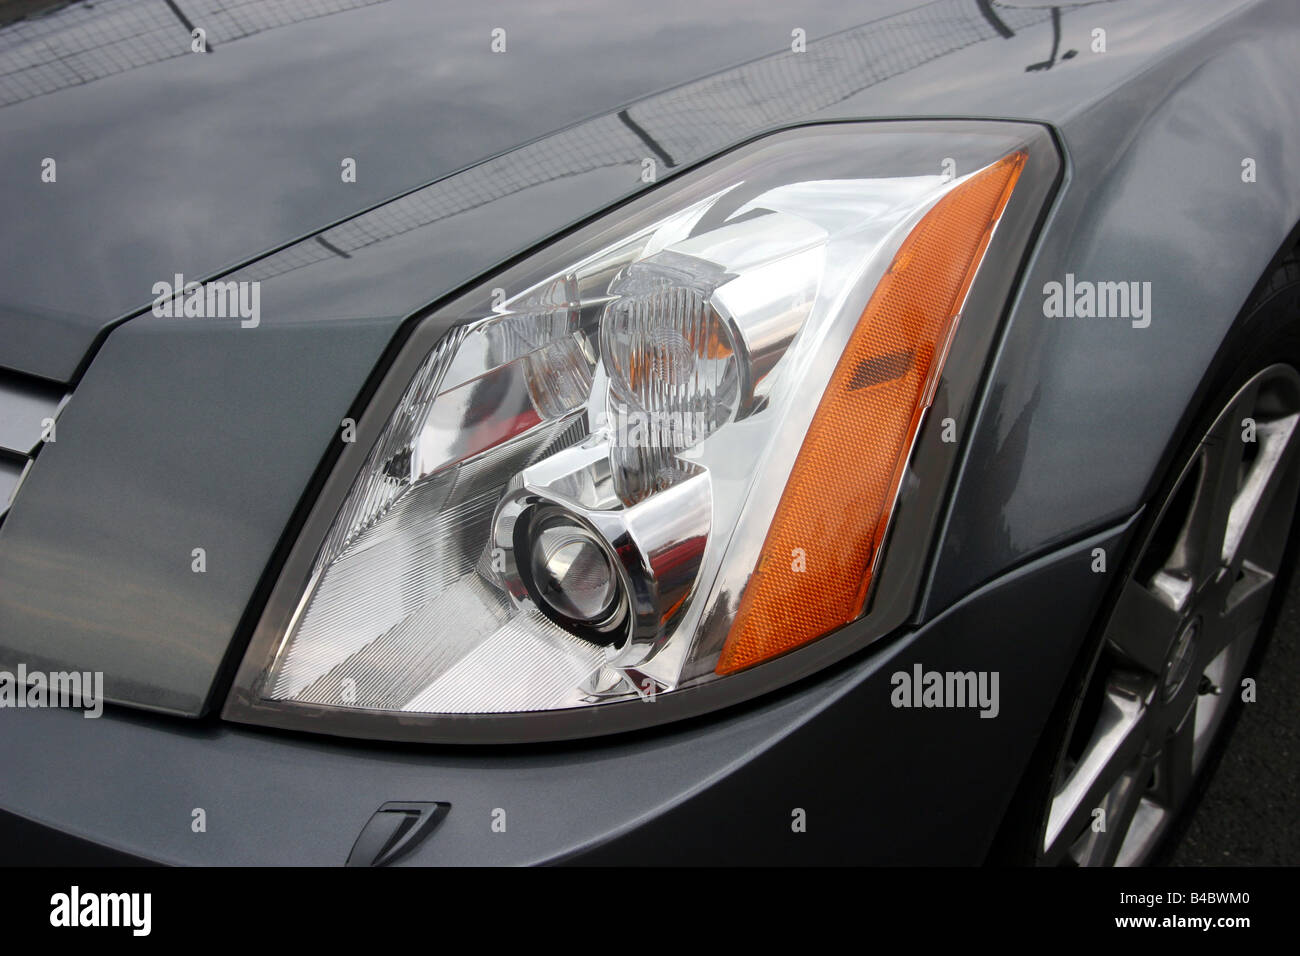 hight resolution of car cadillac xlr convertible model year 2004 anthracite detailed view